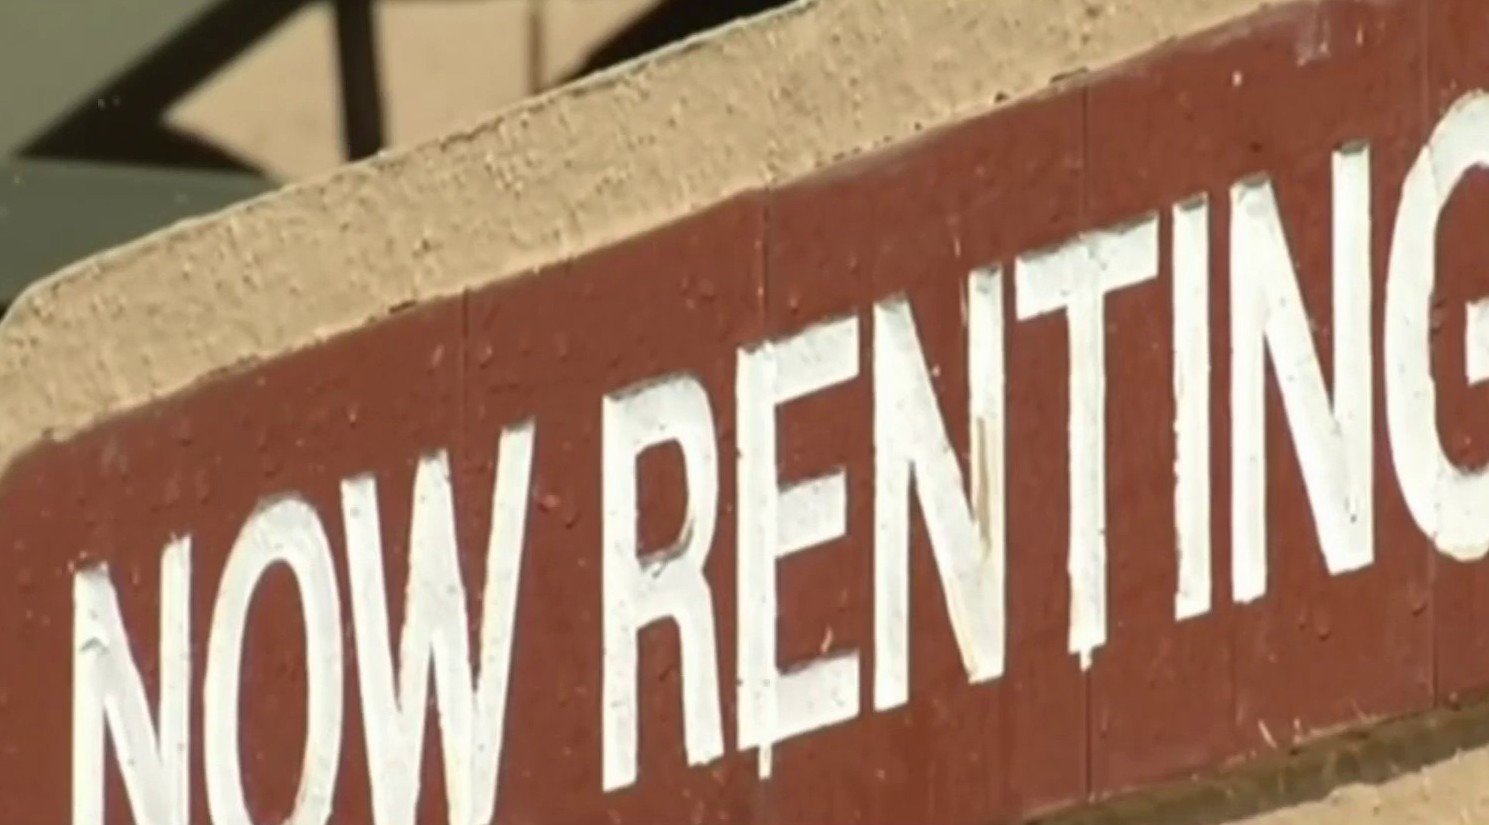 Help for Renters Could Be Coming. City Council President Moves to Use $100M for Rent Relief